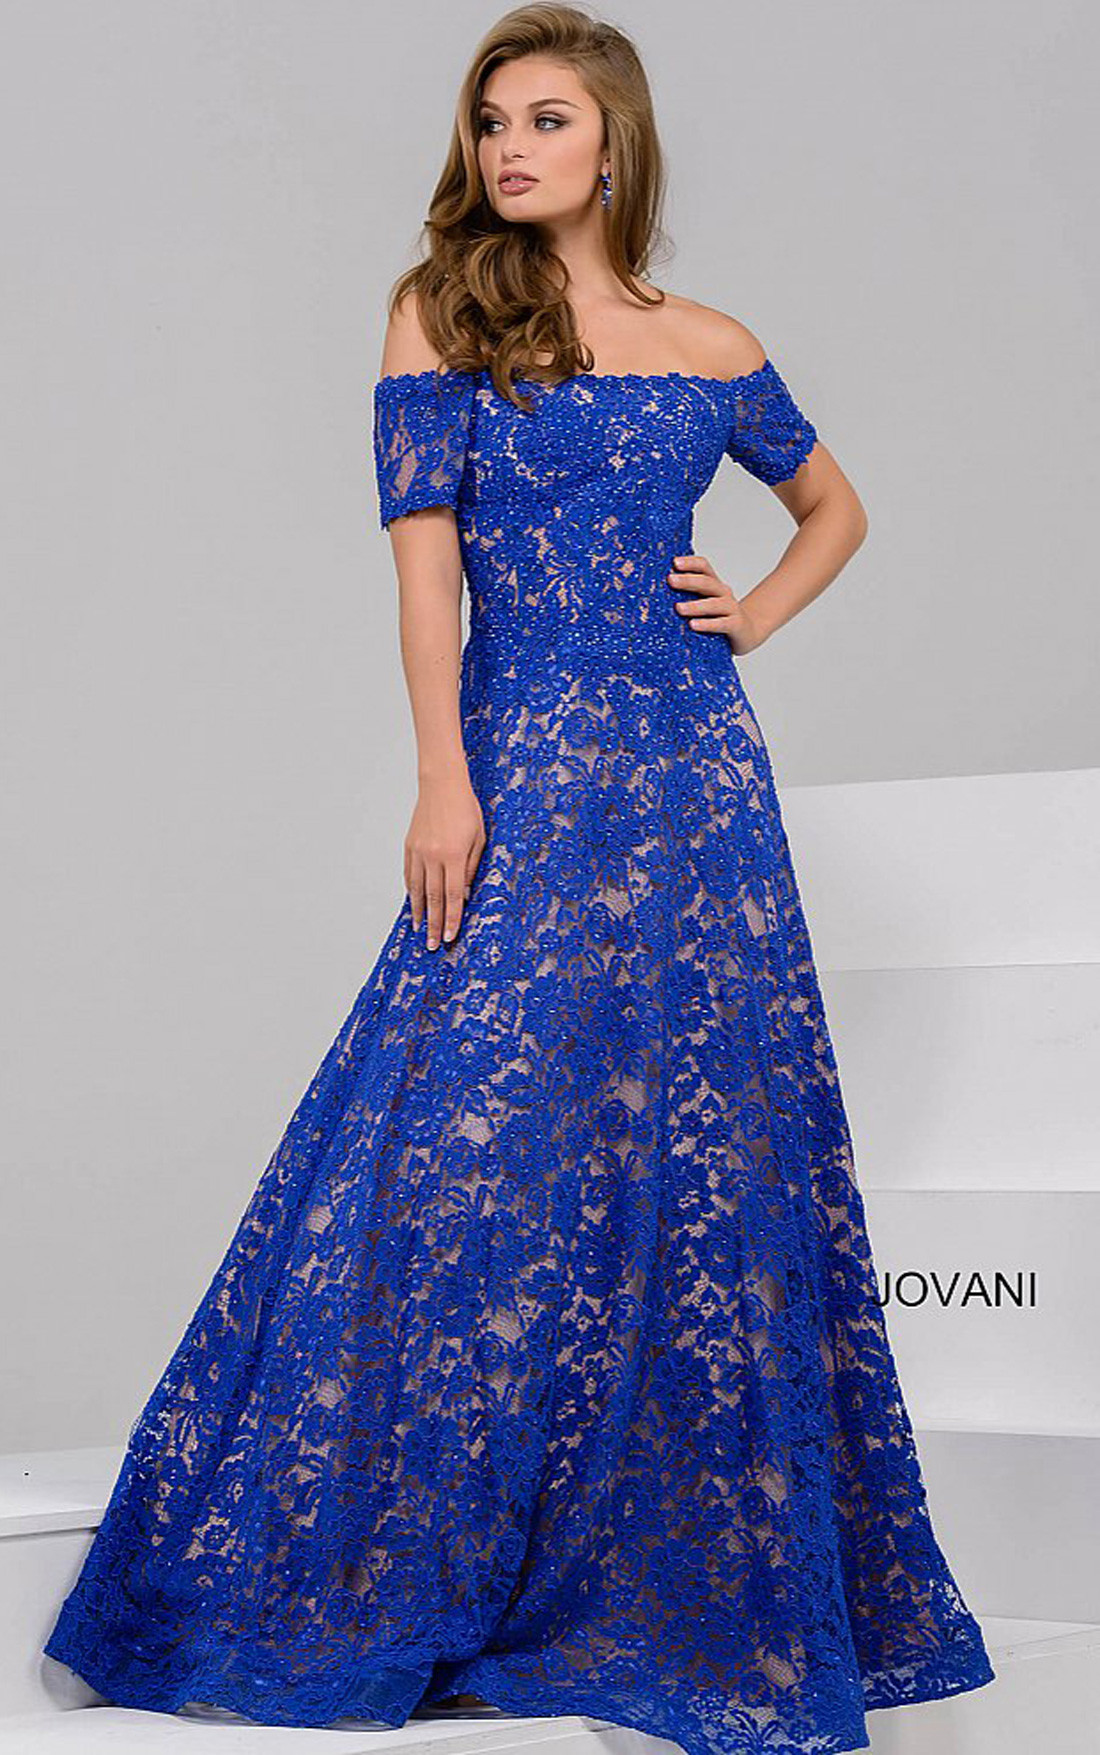 Jovani - Royal Blue Off The Shoulder Lace Ballgown (42828)